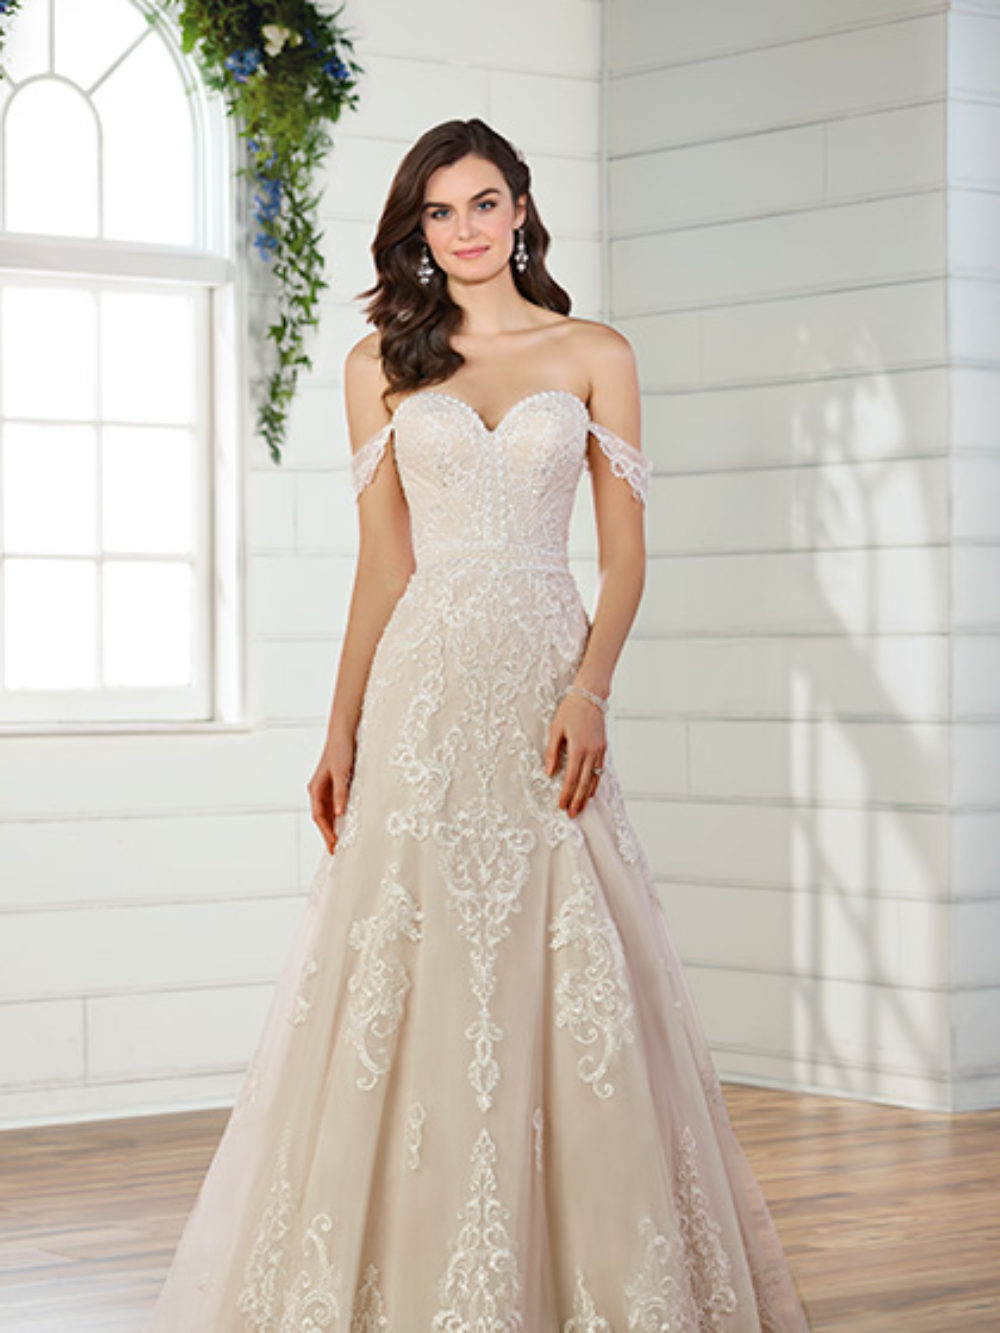 b5eb51f6073 Maggie Sottero Wedding Dresses from Precious Memories Bridal Shop